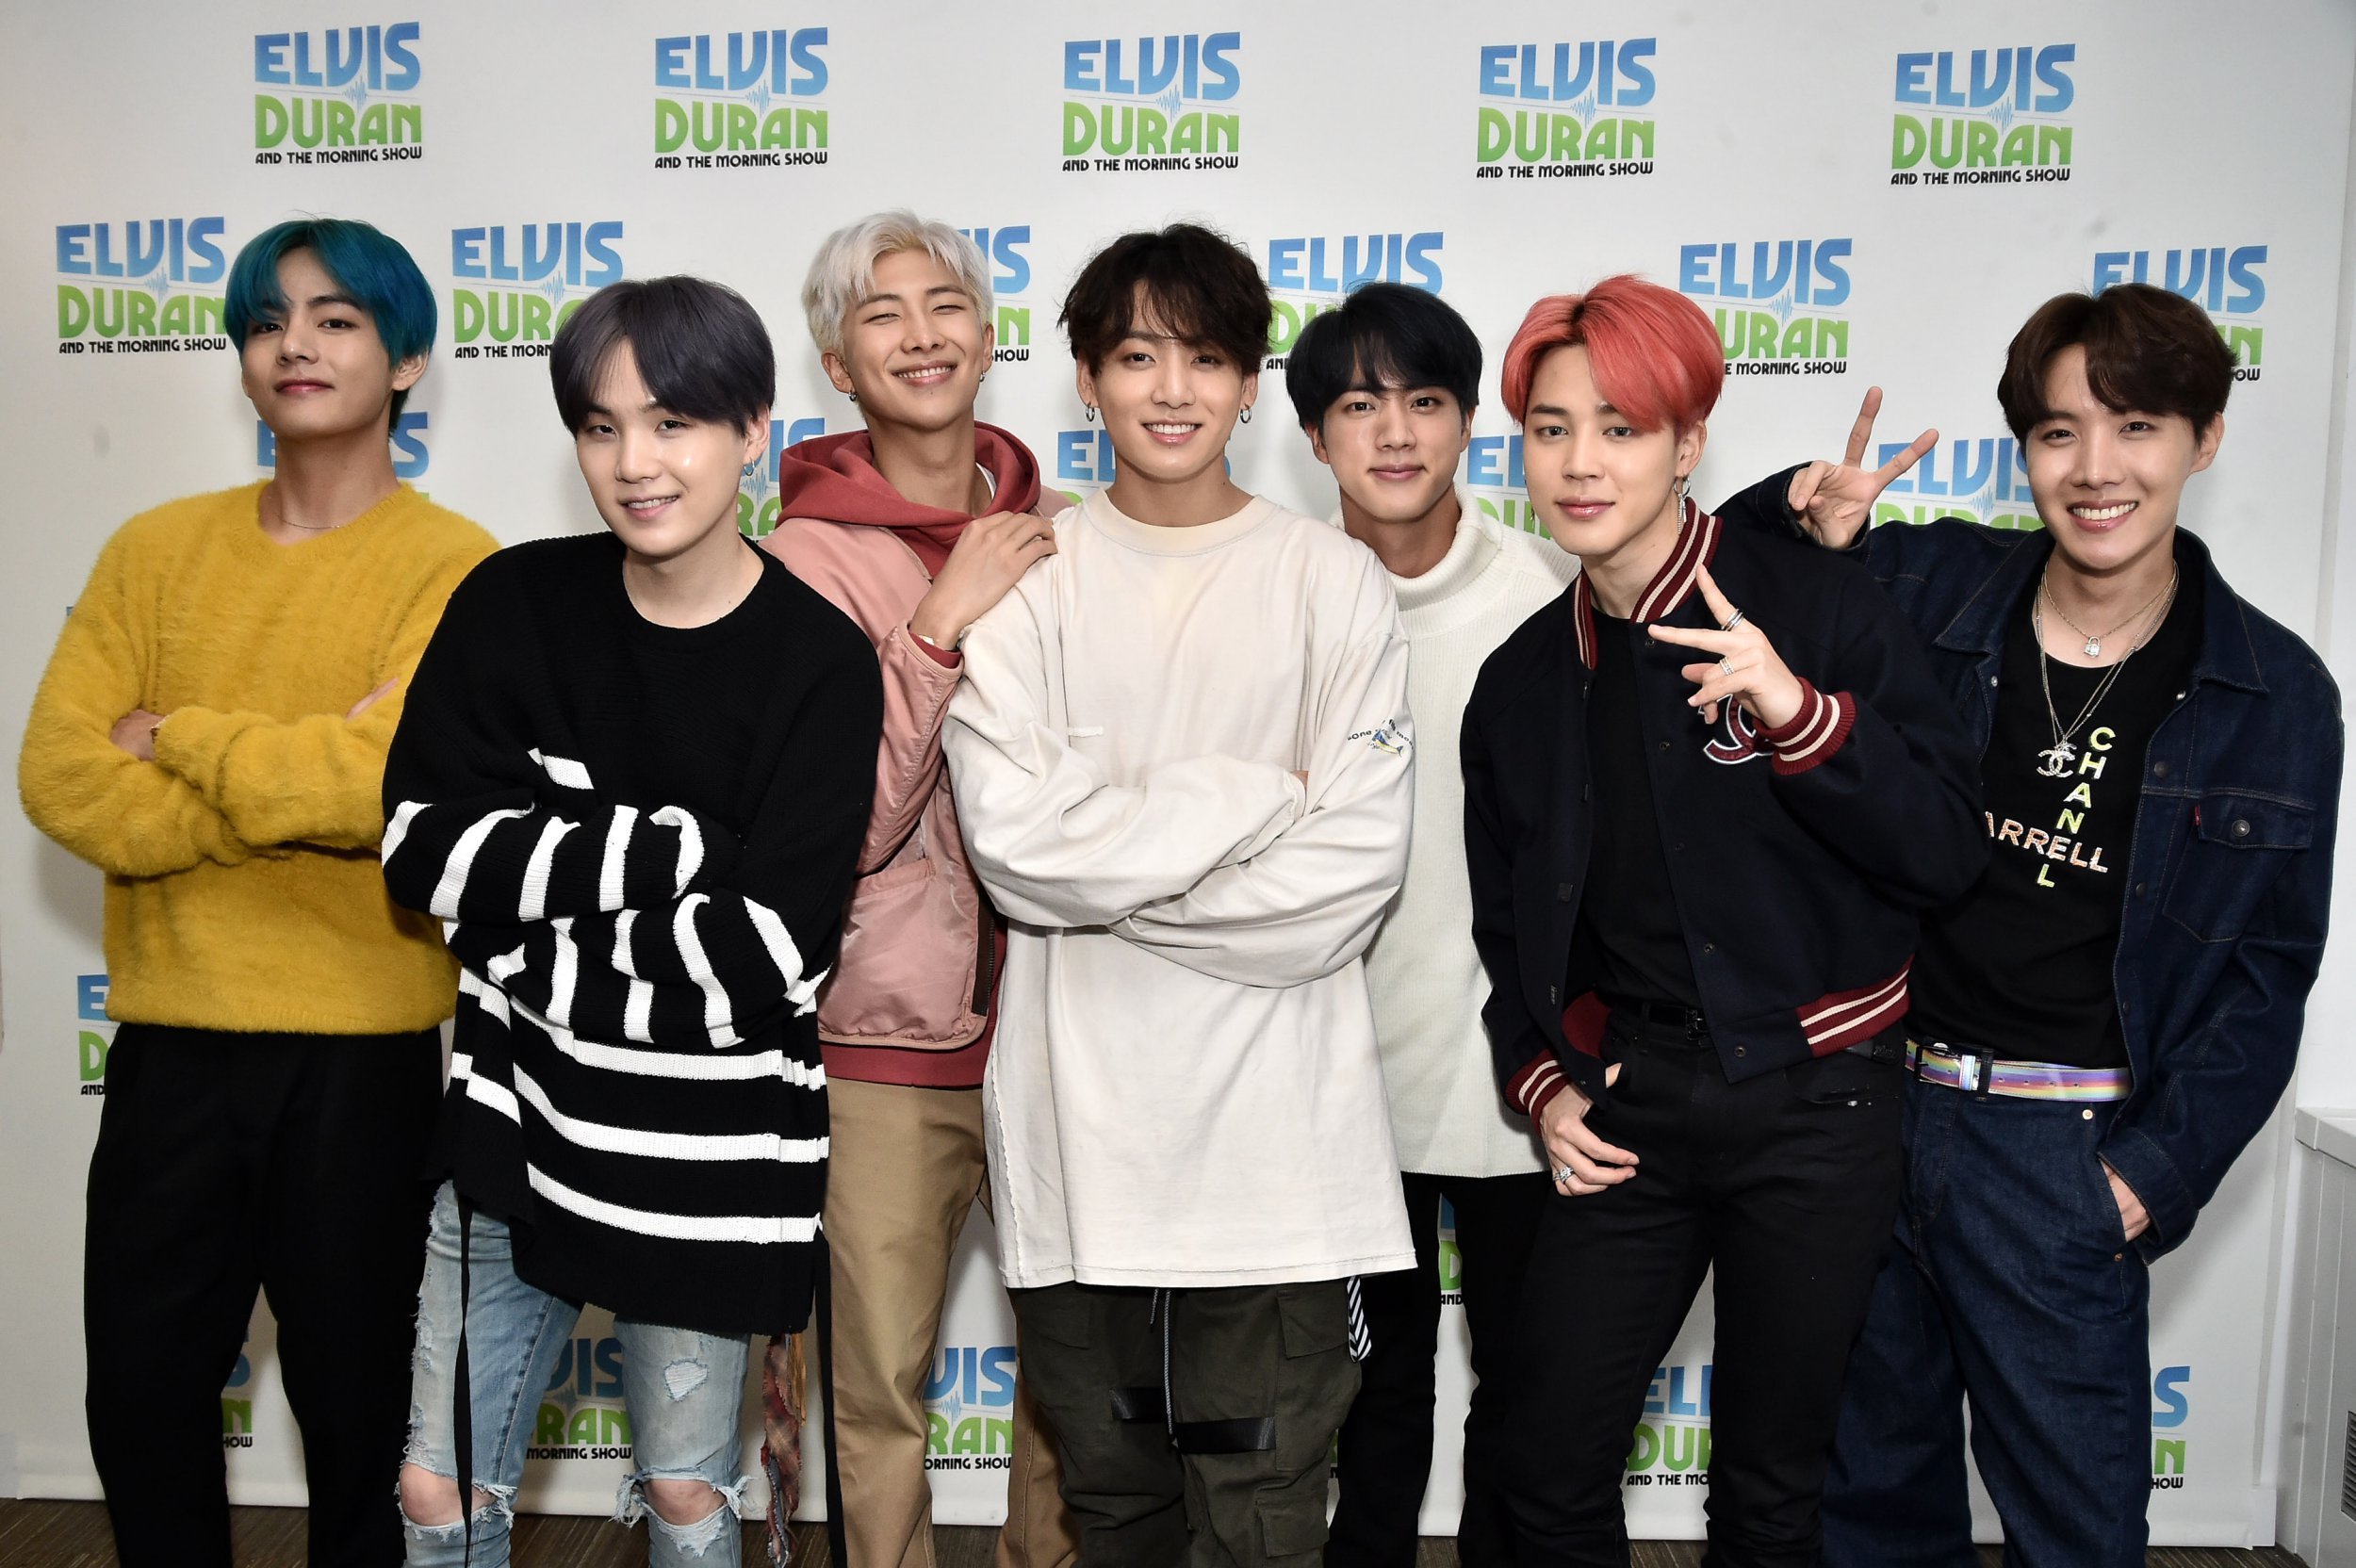 NEW YORK, NY - APRIL 12: (EXCLUSIVE COVERAGE) V, Suga, RM, Jungkook, Jin, Jimin, J-Hope of BTS visit The Elvis Duran Z100 Morning Show at Z100 Studio on April 12, 2019 in New York City. (Photo by Steven Ferdman/Getty Images)